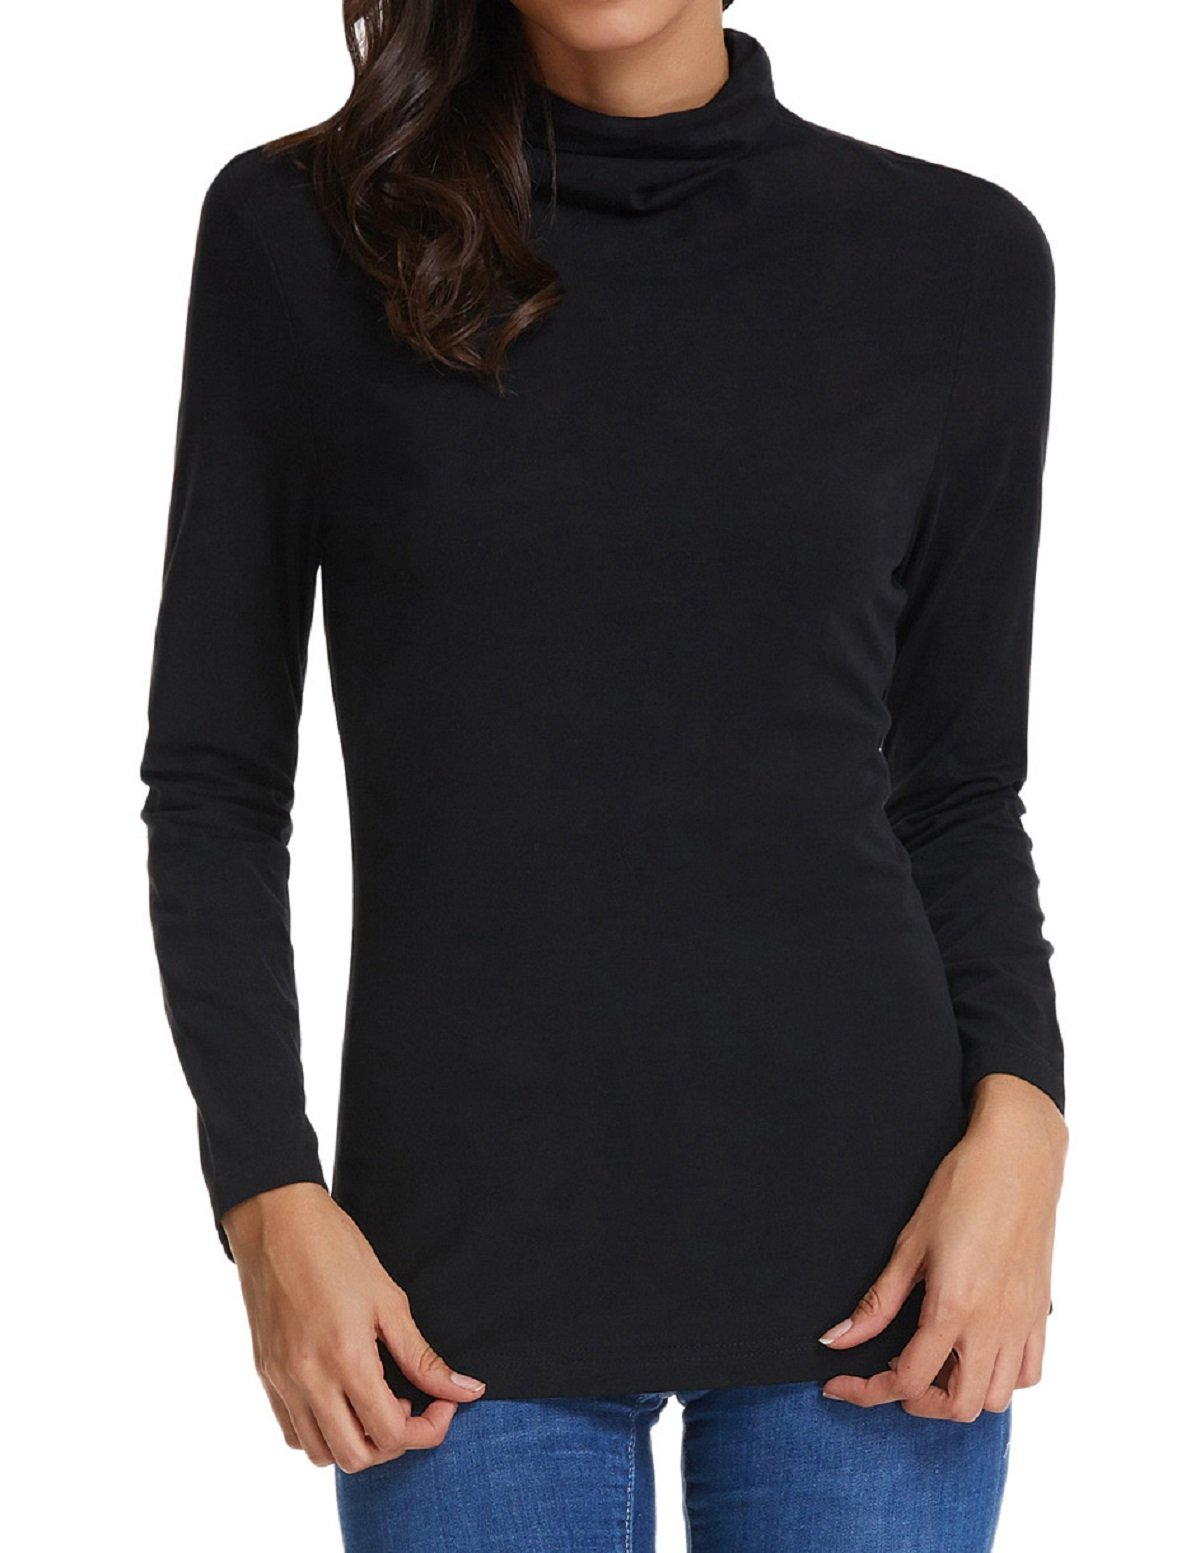 Comfortable Turtleneck Pullover Jersey Top For Junior (XL,Black) by Kate Kasin (Image #2)